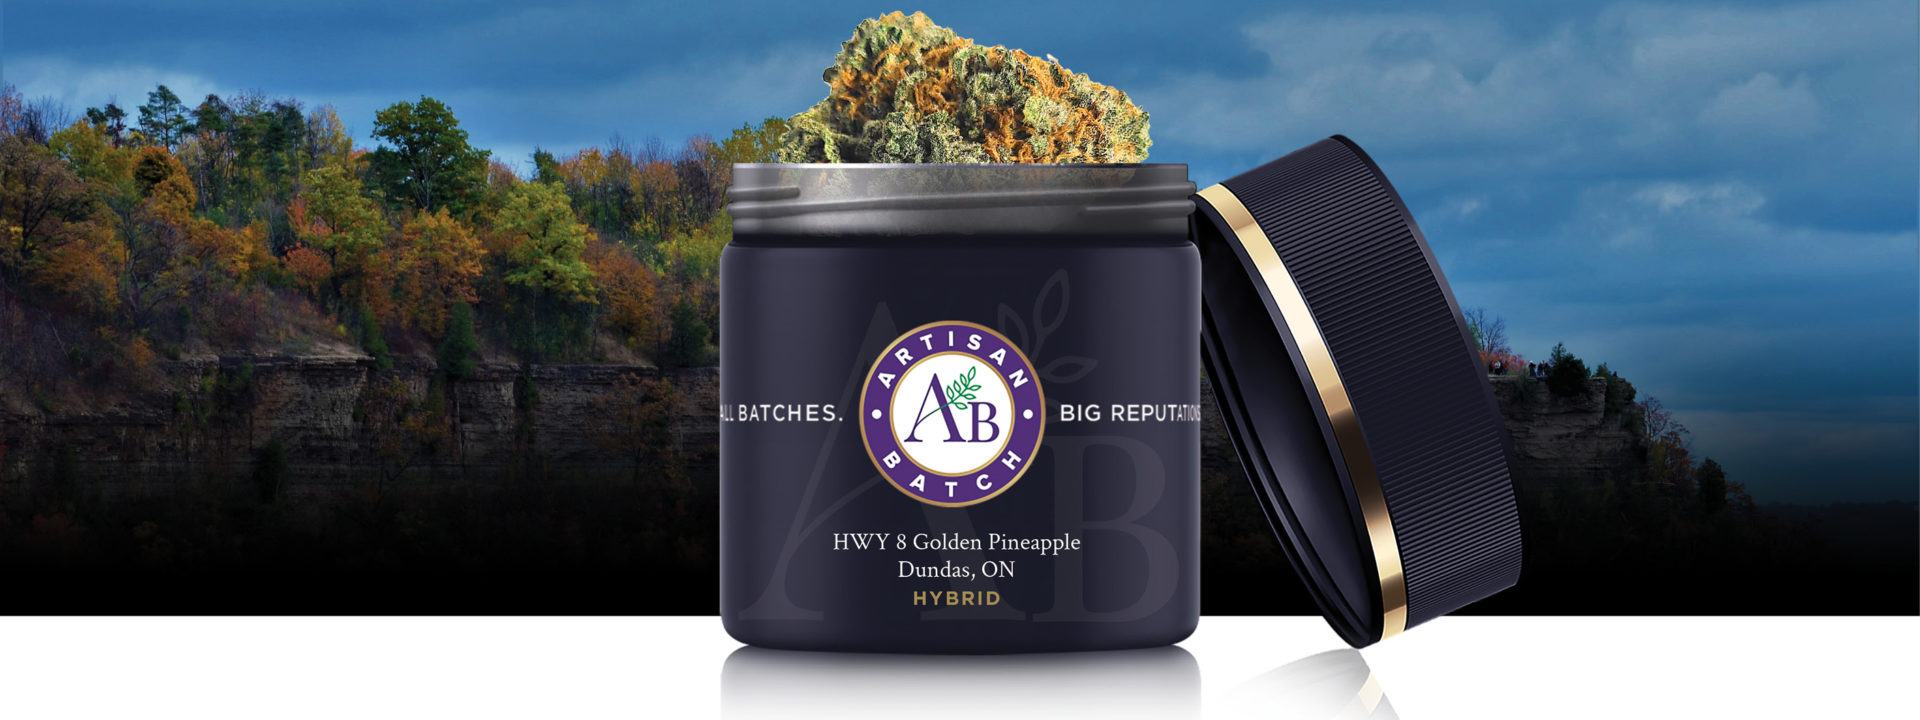 Blue jar of Artisan Batch HWY 8 Golden Pineapple, with strain name in gold text, lid off jar and bud sticking out. Background image is a rocky cliff with fall coloured maple trees.